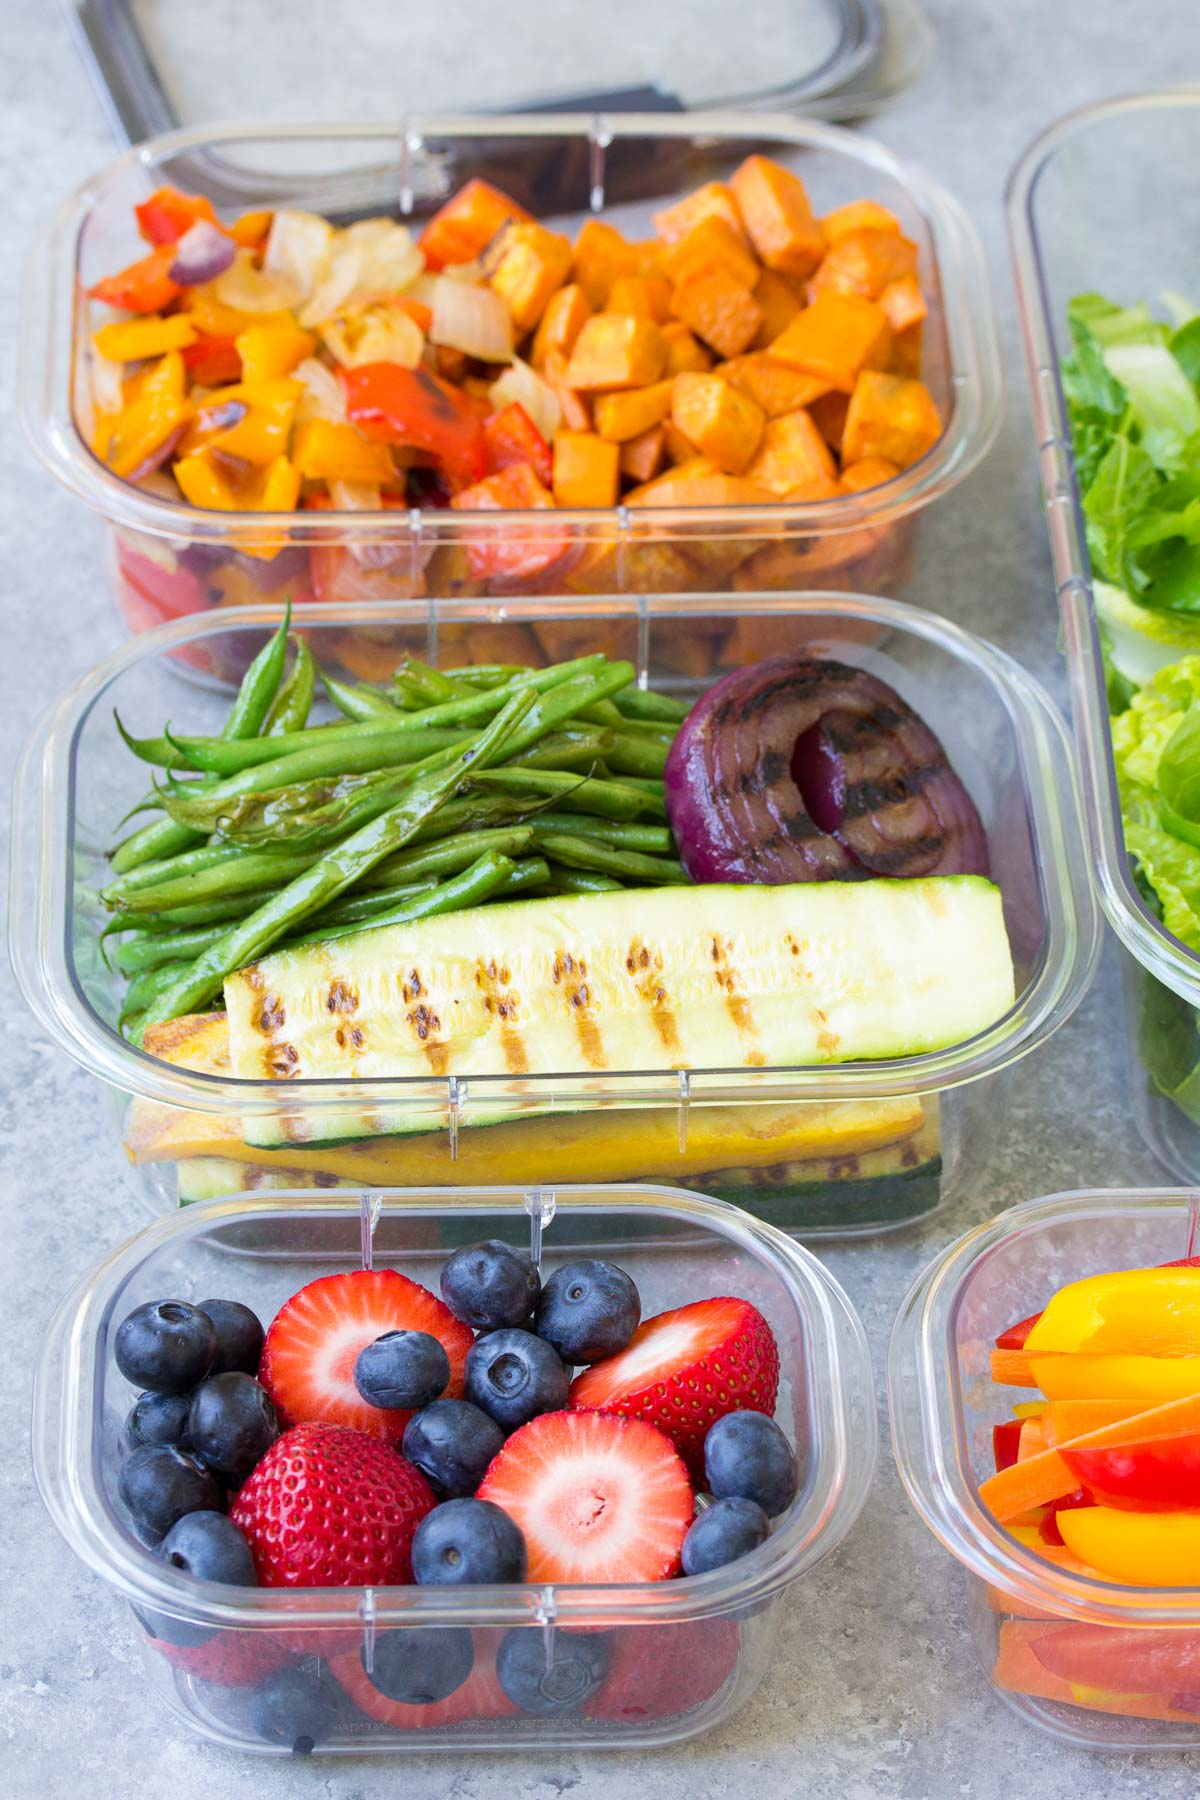 How To Eat More Vegetables And Fruits With Meal Prep